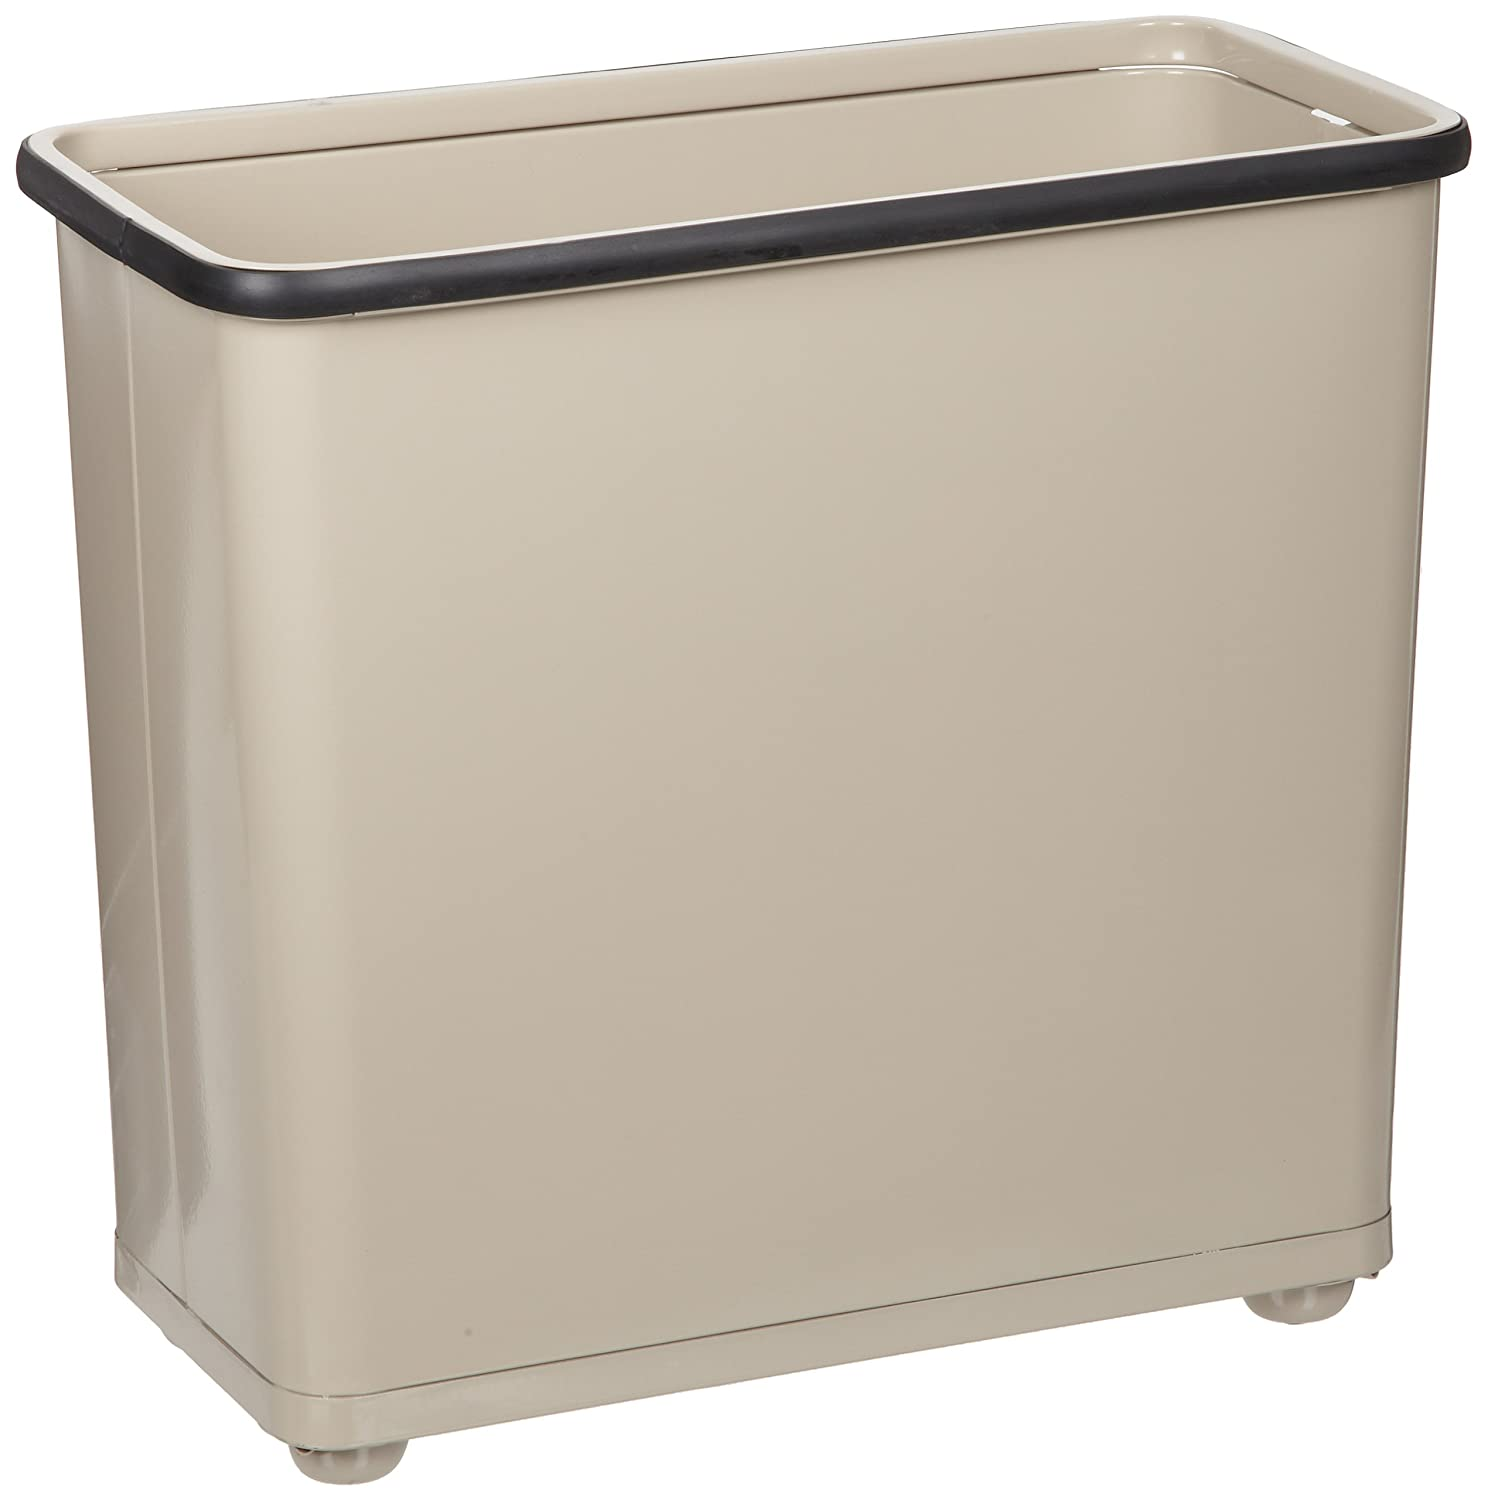 Rubbermaid Commercial Steel Open-Top Waste Basket, Rectangular, 7 ½ Gallon, Almond, FGWB30RAL